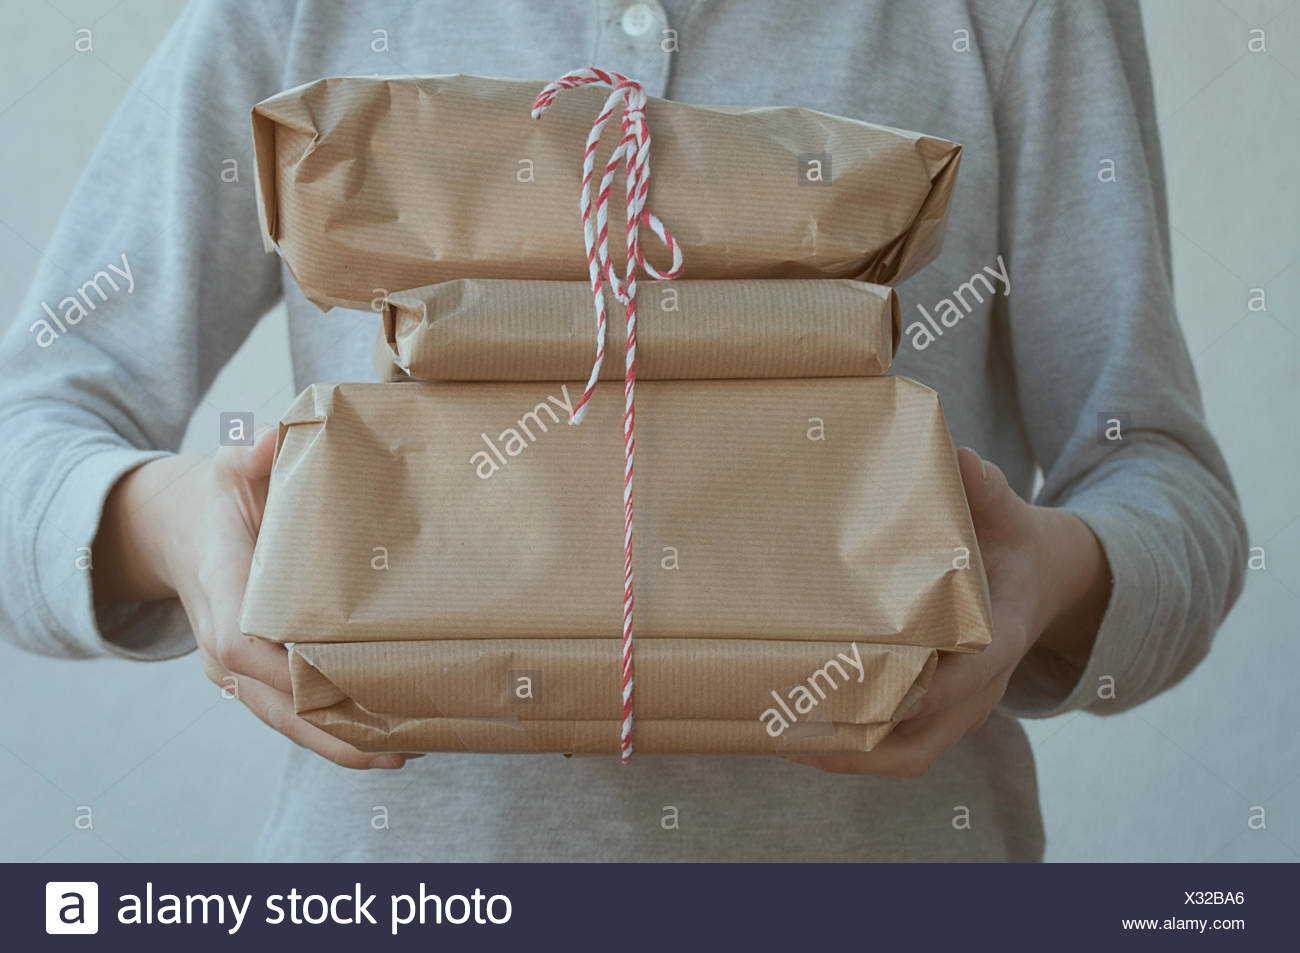 Boy holding a stack of presents - Stock Image